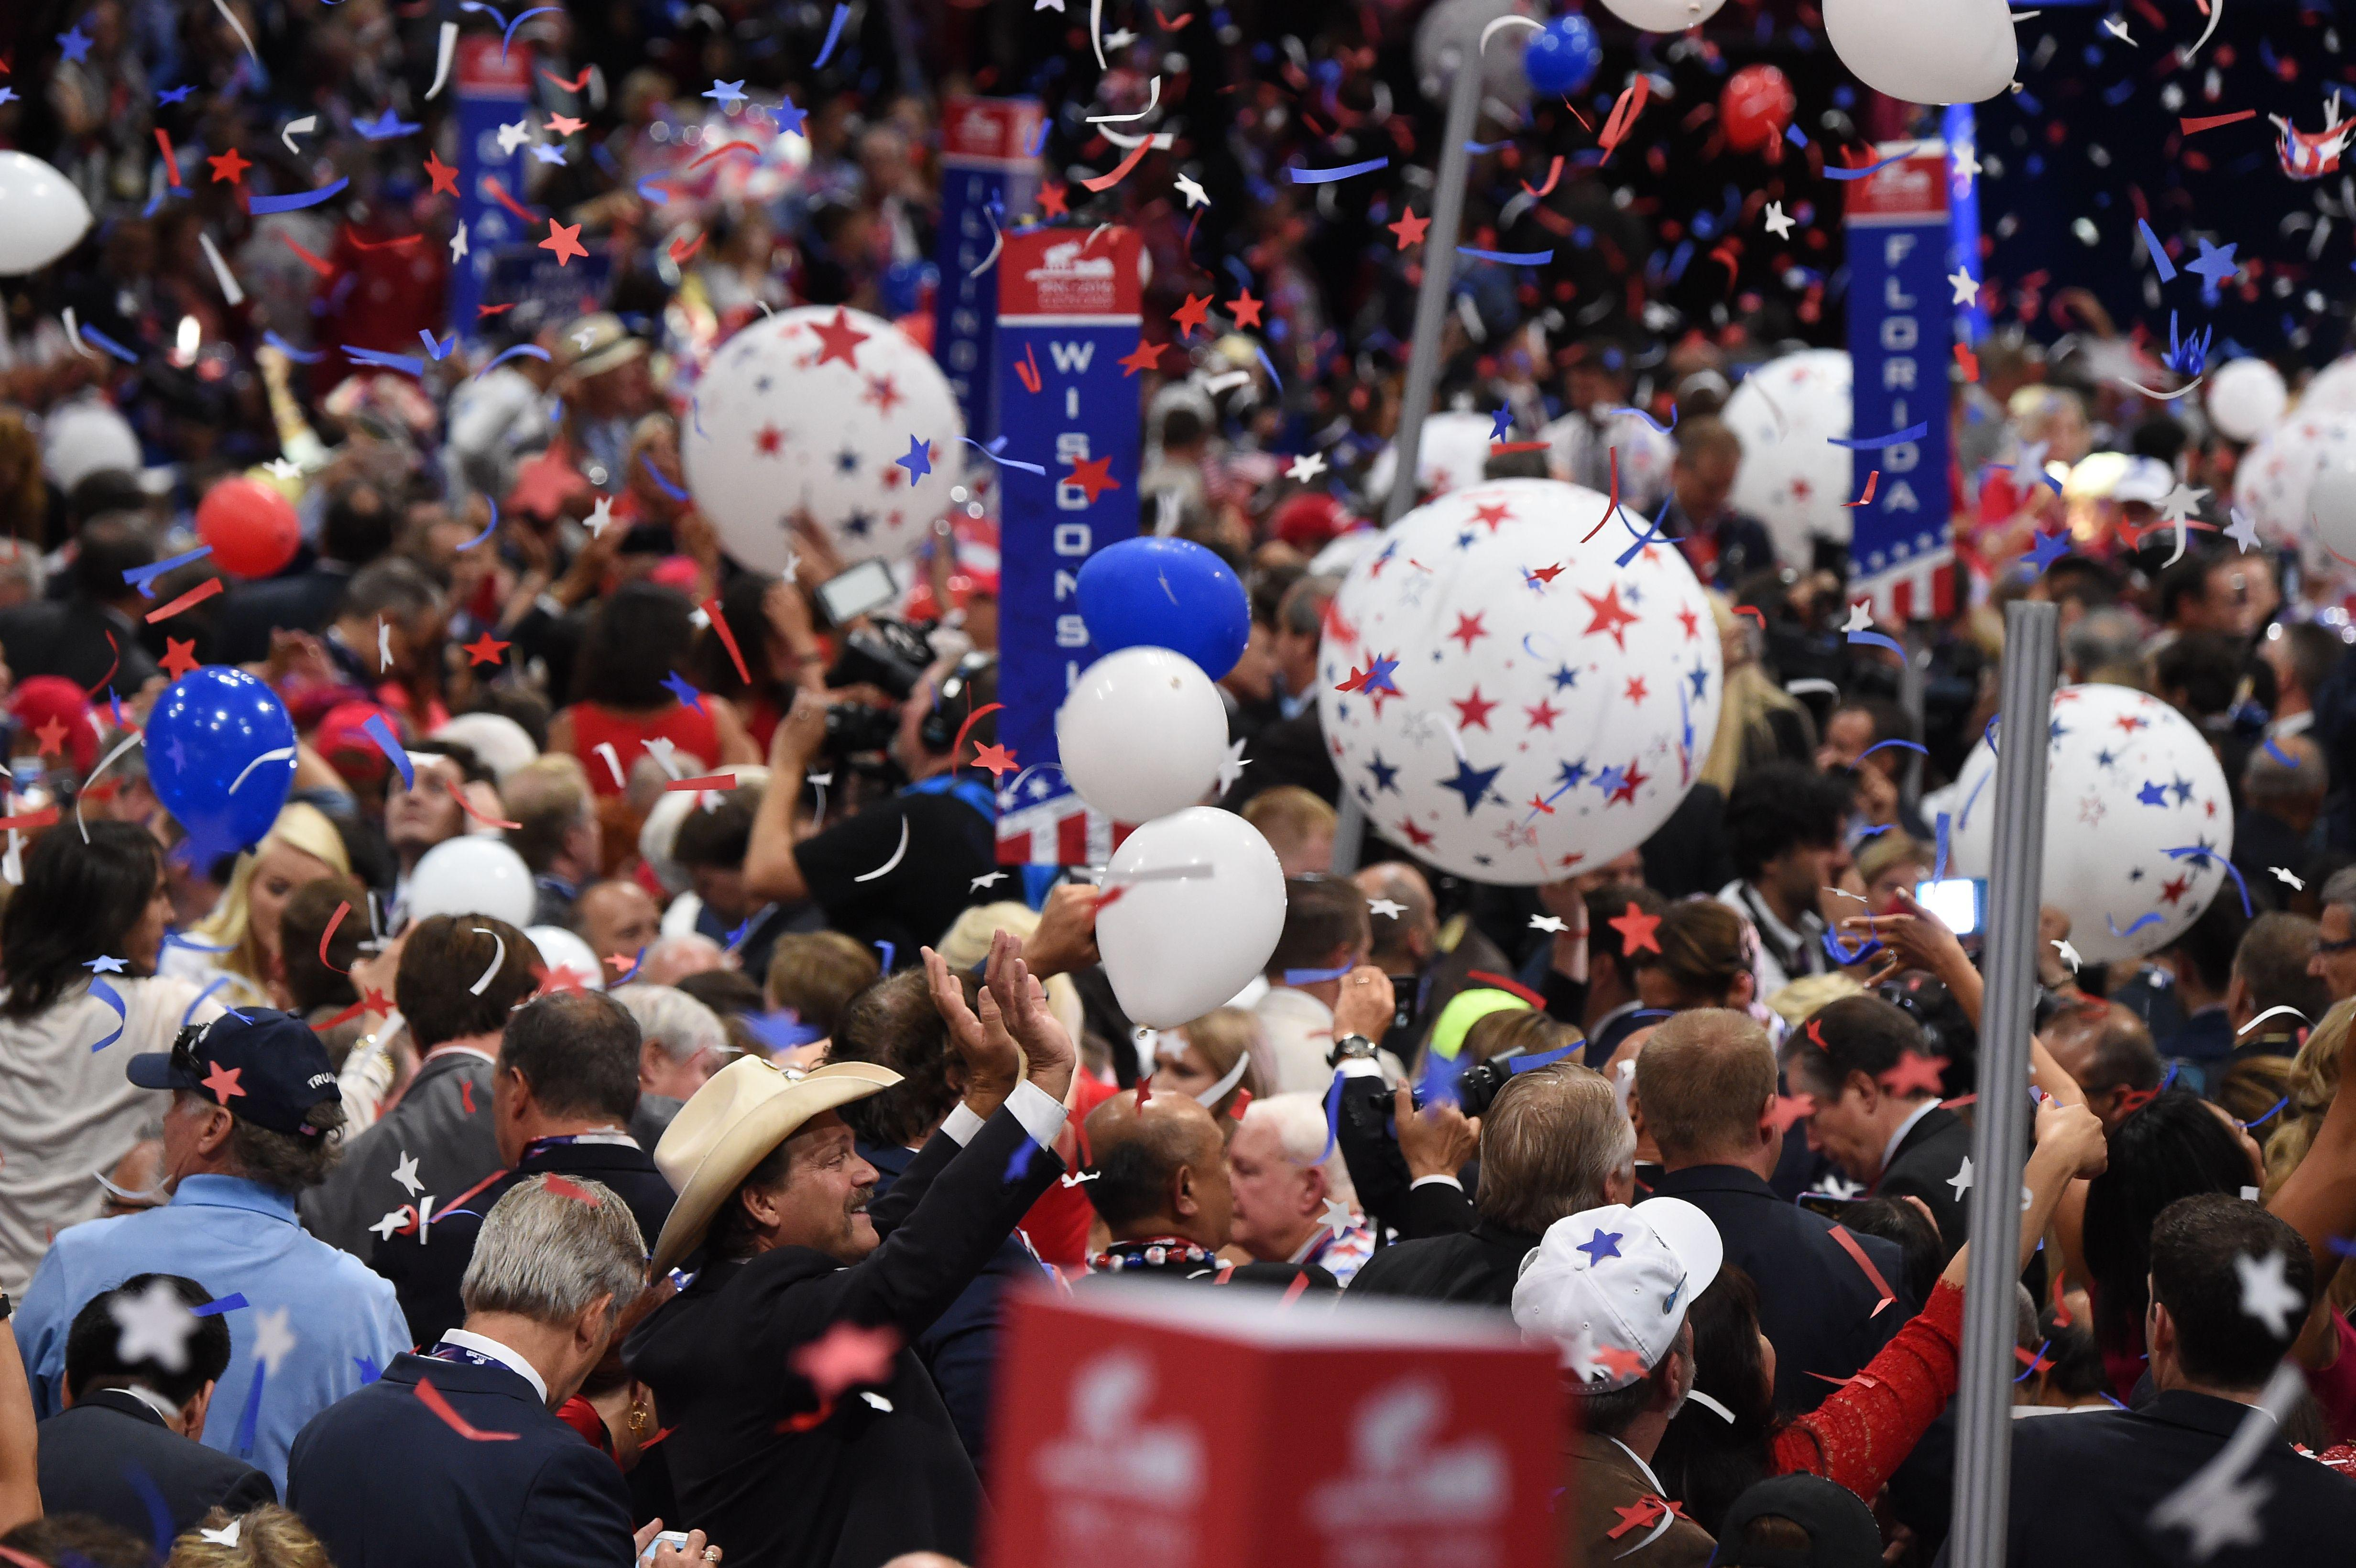 Balloons and confetti descend following an address by Donald Trump.